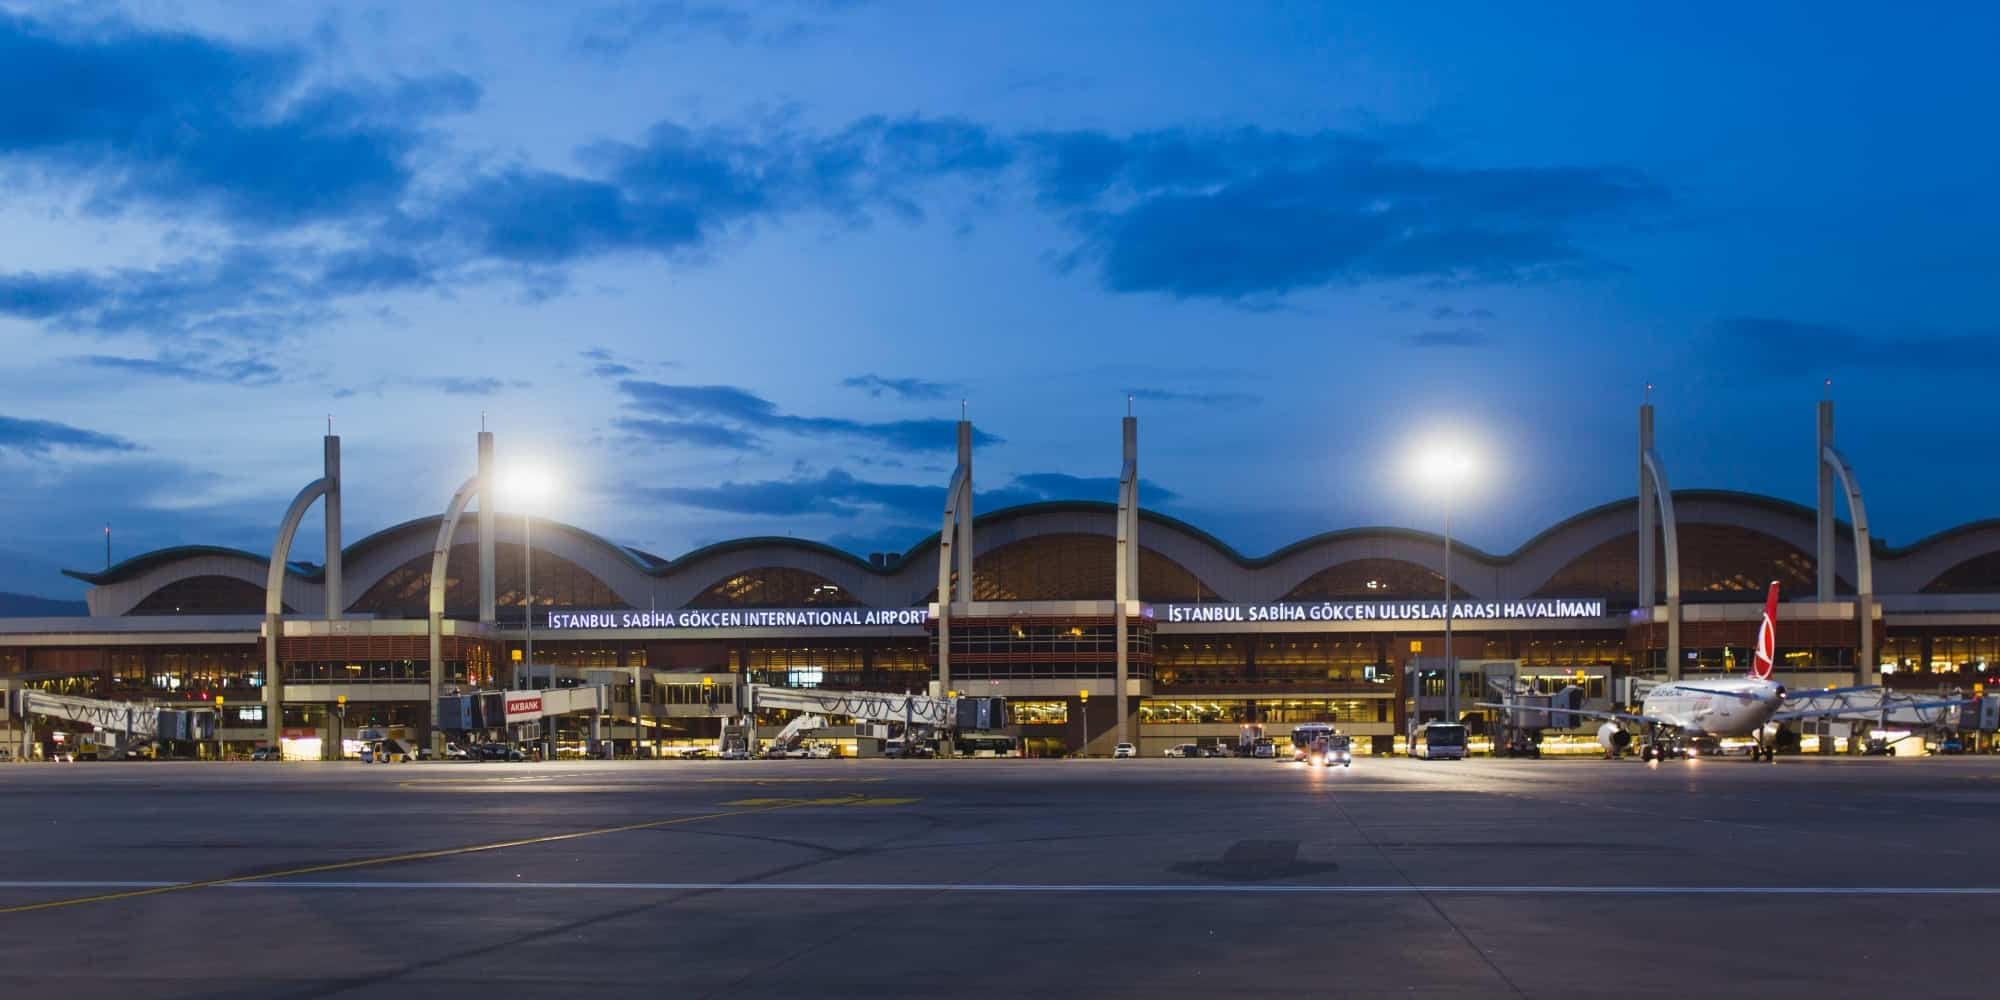 How To Get From Istanbul Sabiha Gokcen Airport To Taksim Or